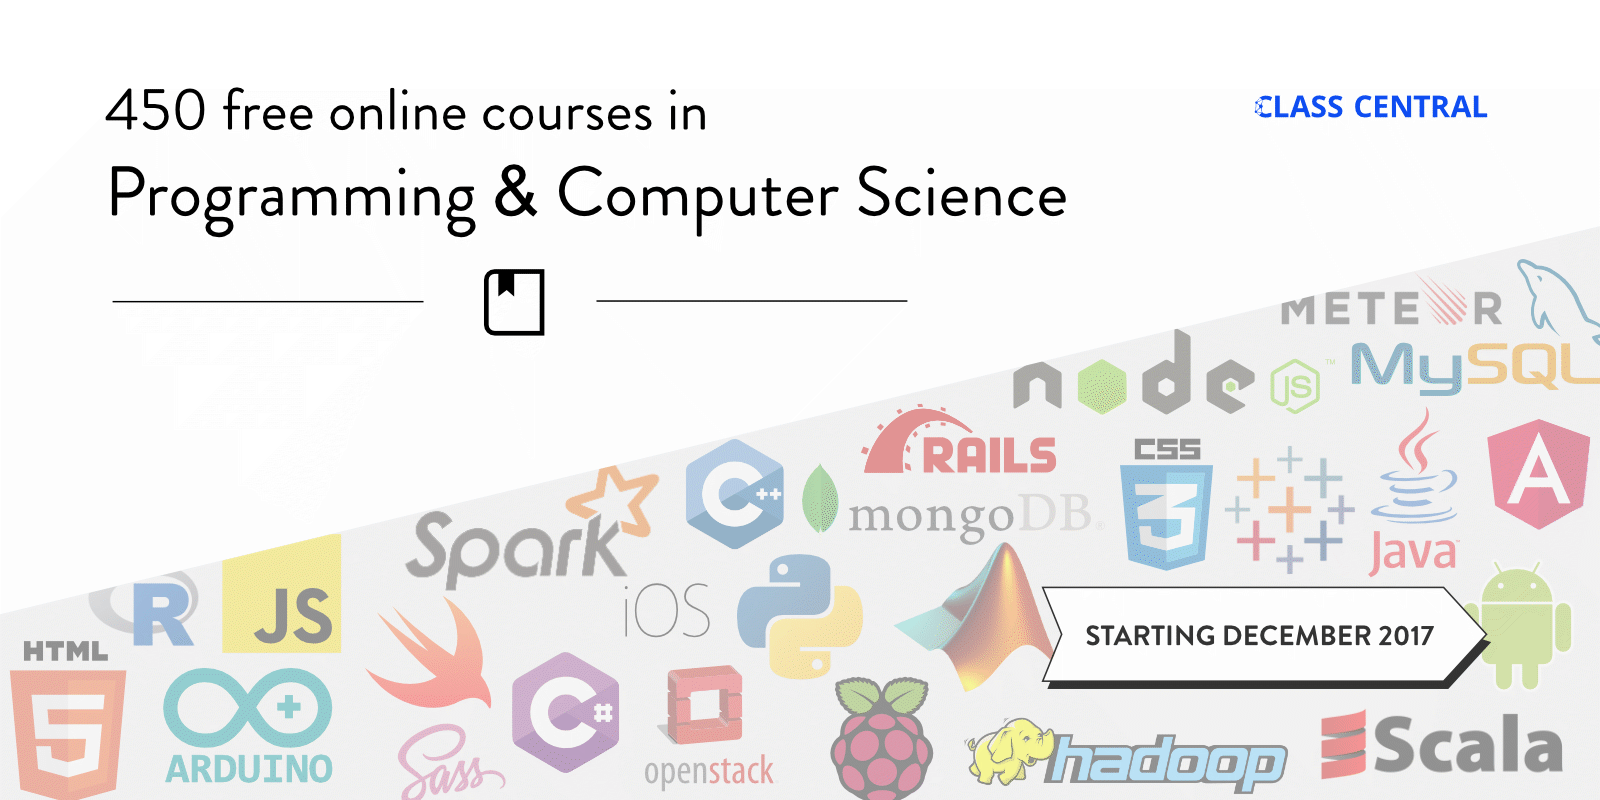 450 Free Online Programming Computer Science Courses You Can Start